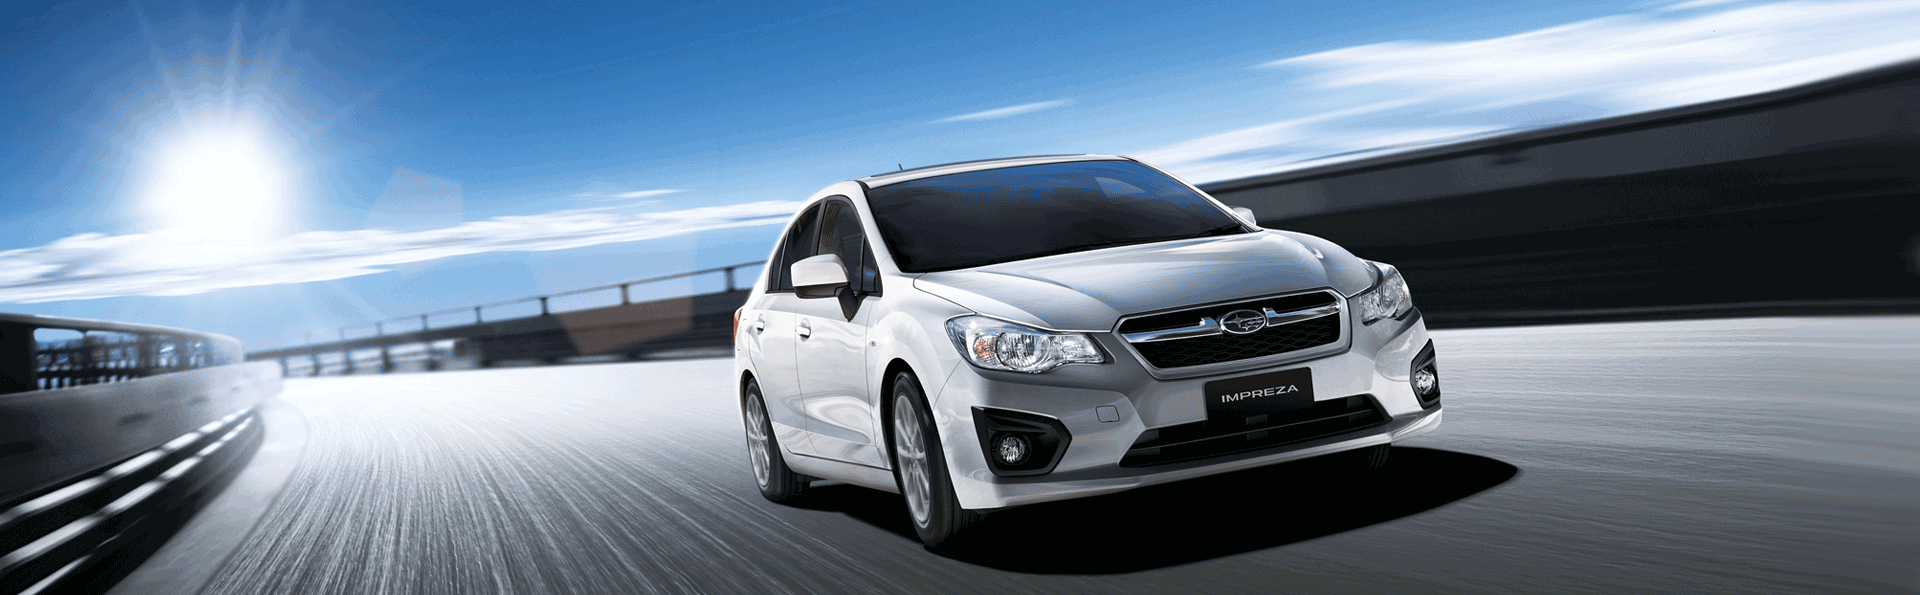 Key Motors Subaru | Banners 2